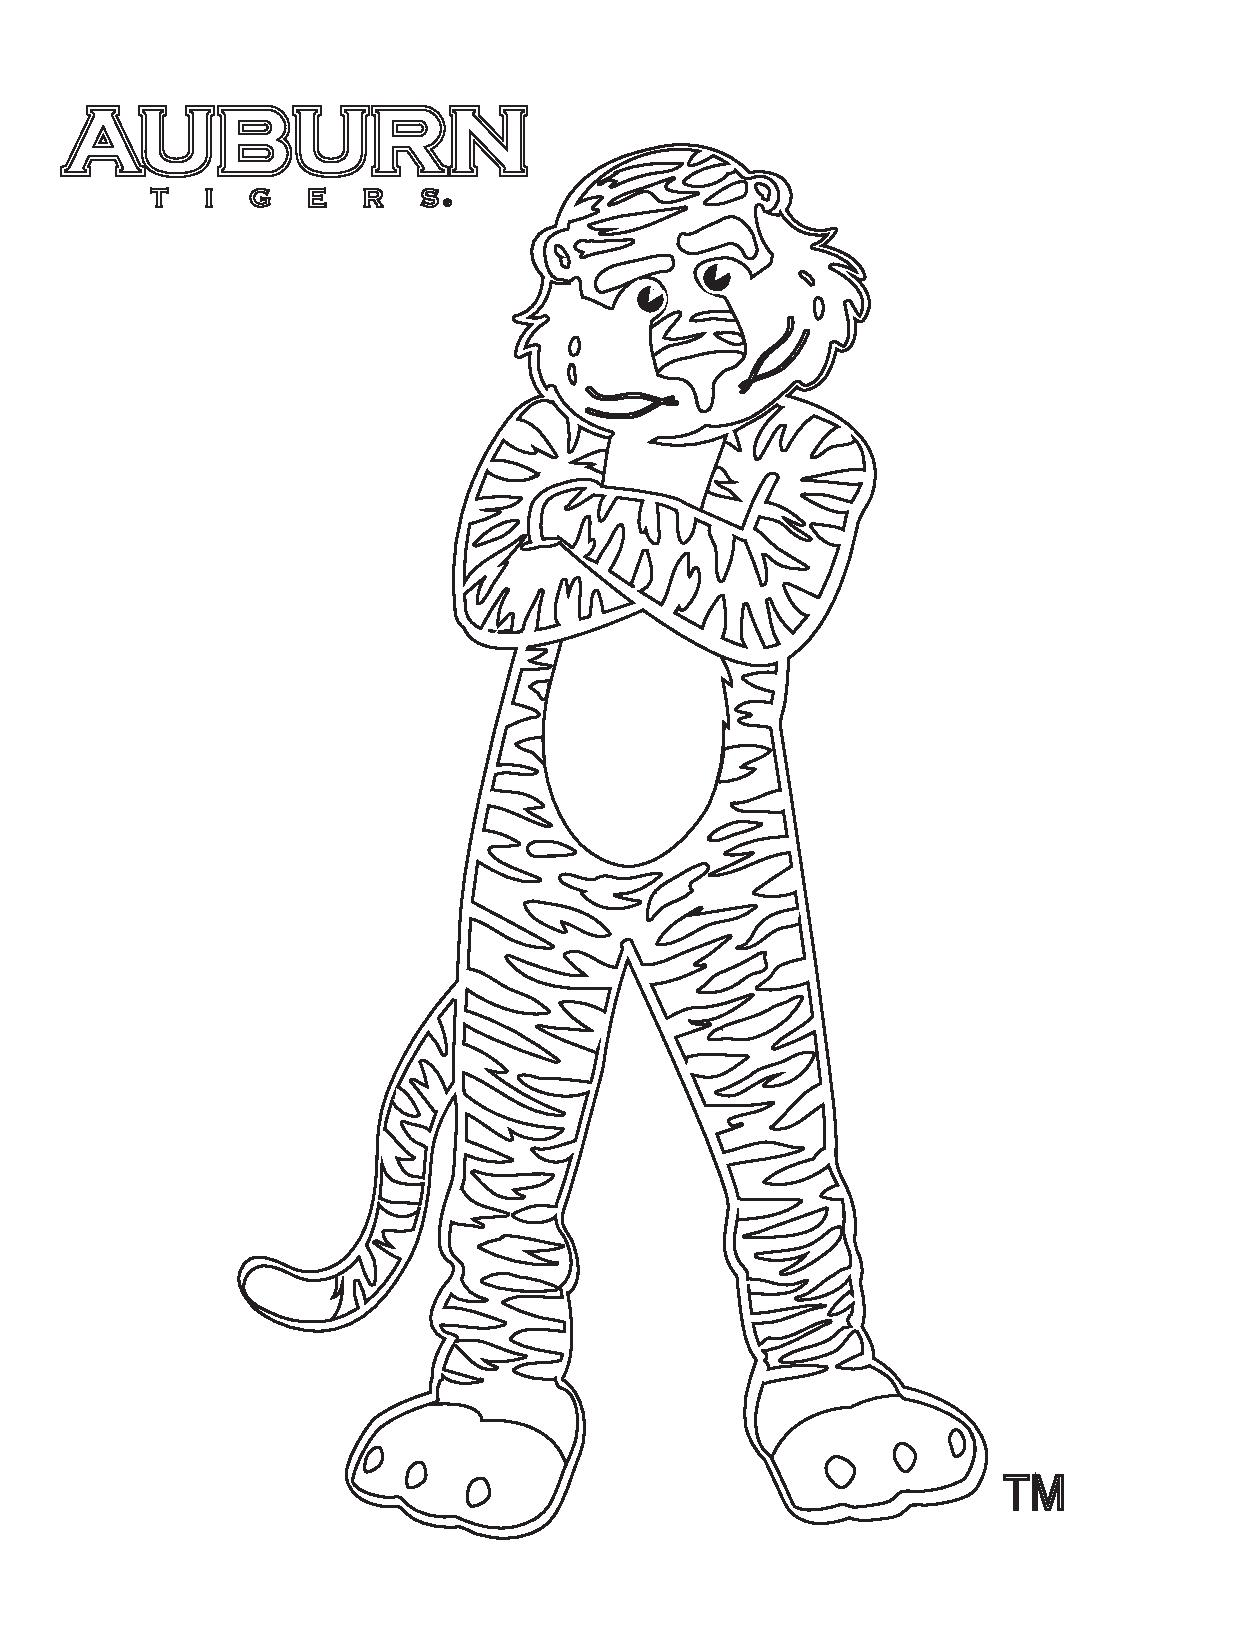 Auburn Coloring Pages Az Coloring Pages Auburn Coloring Pages